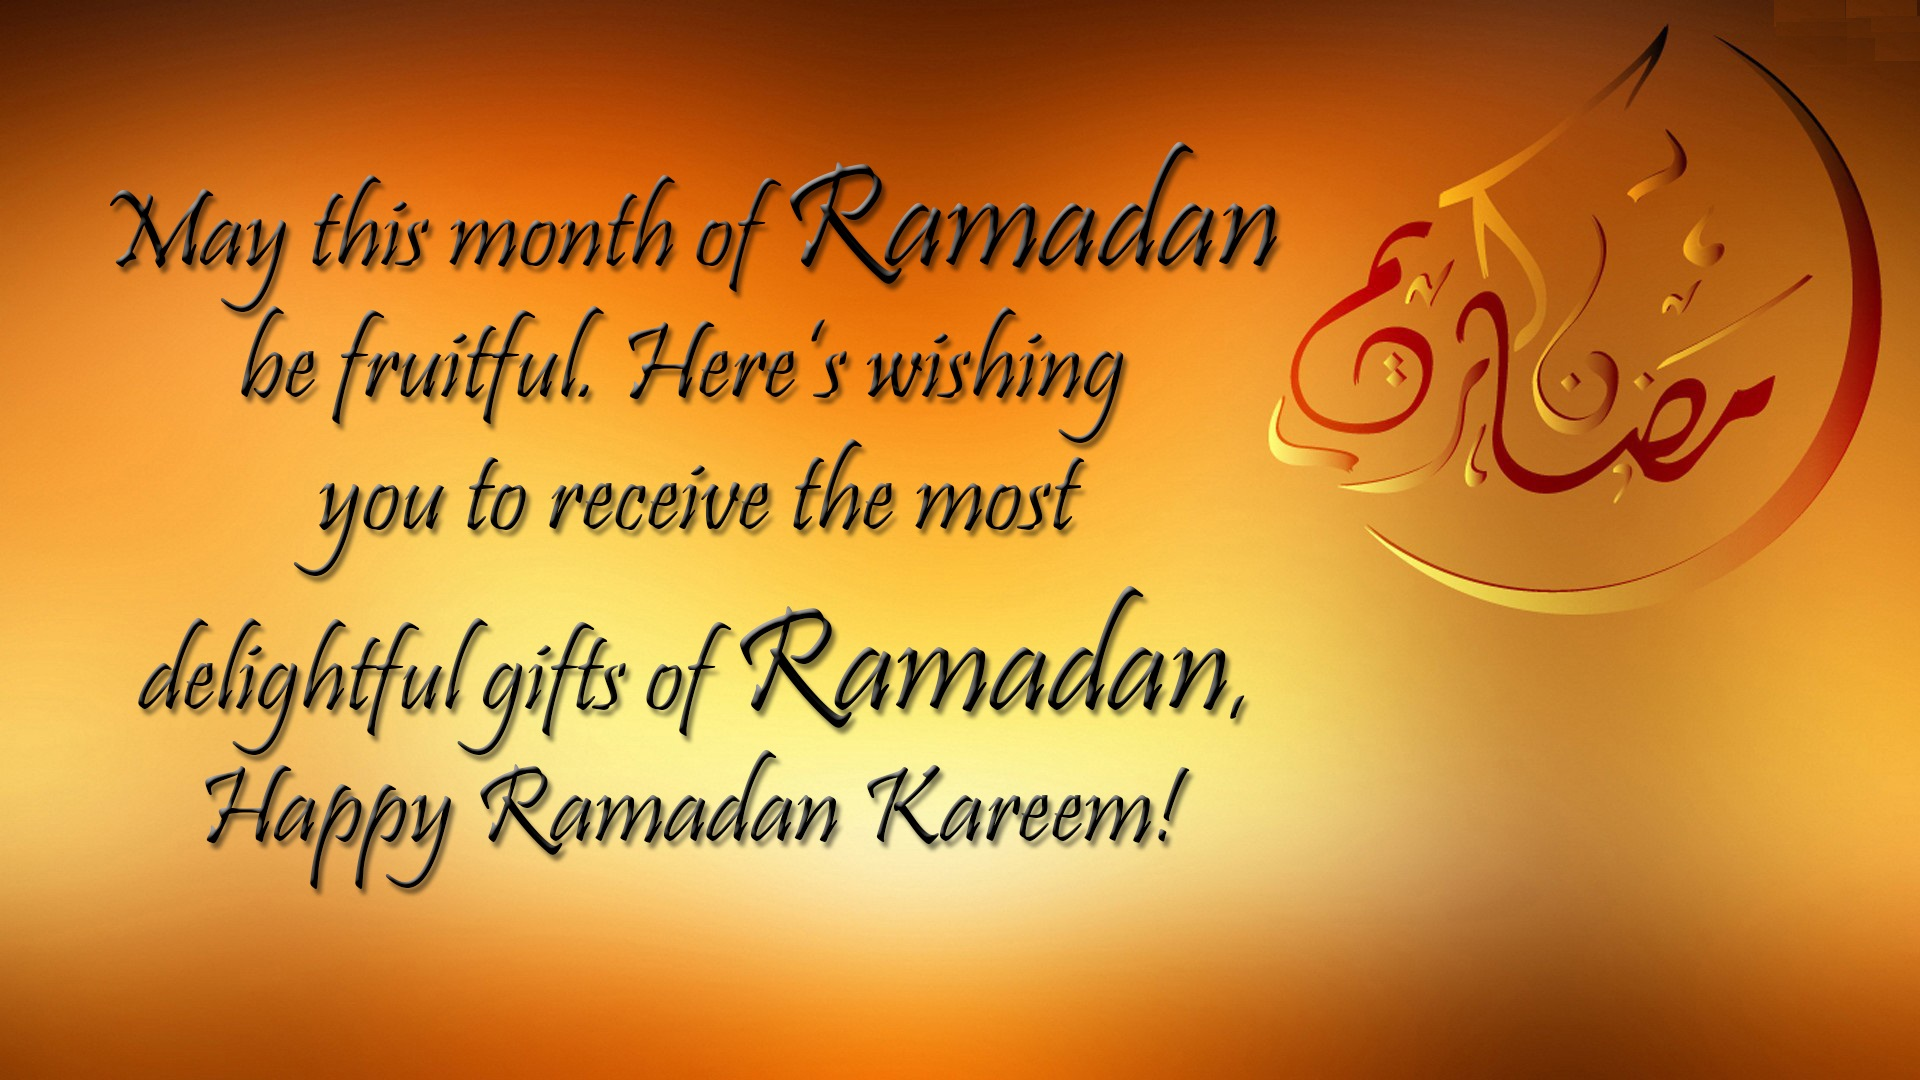 Happy Ramadan Wishes Greetings Images Ramadan Mubarak